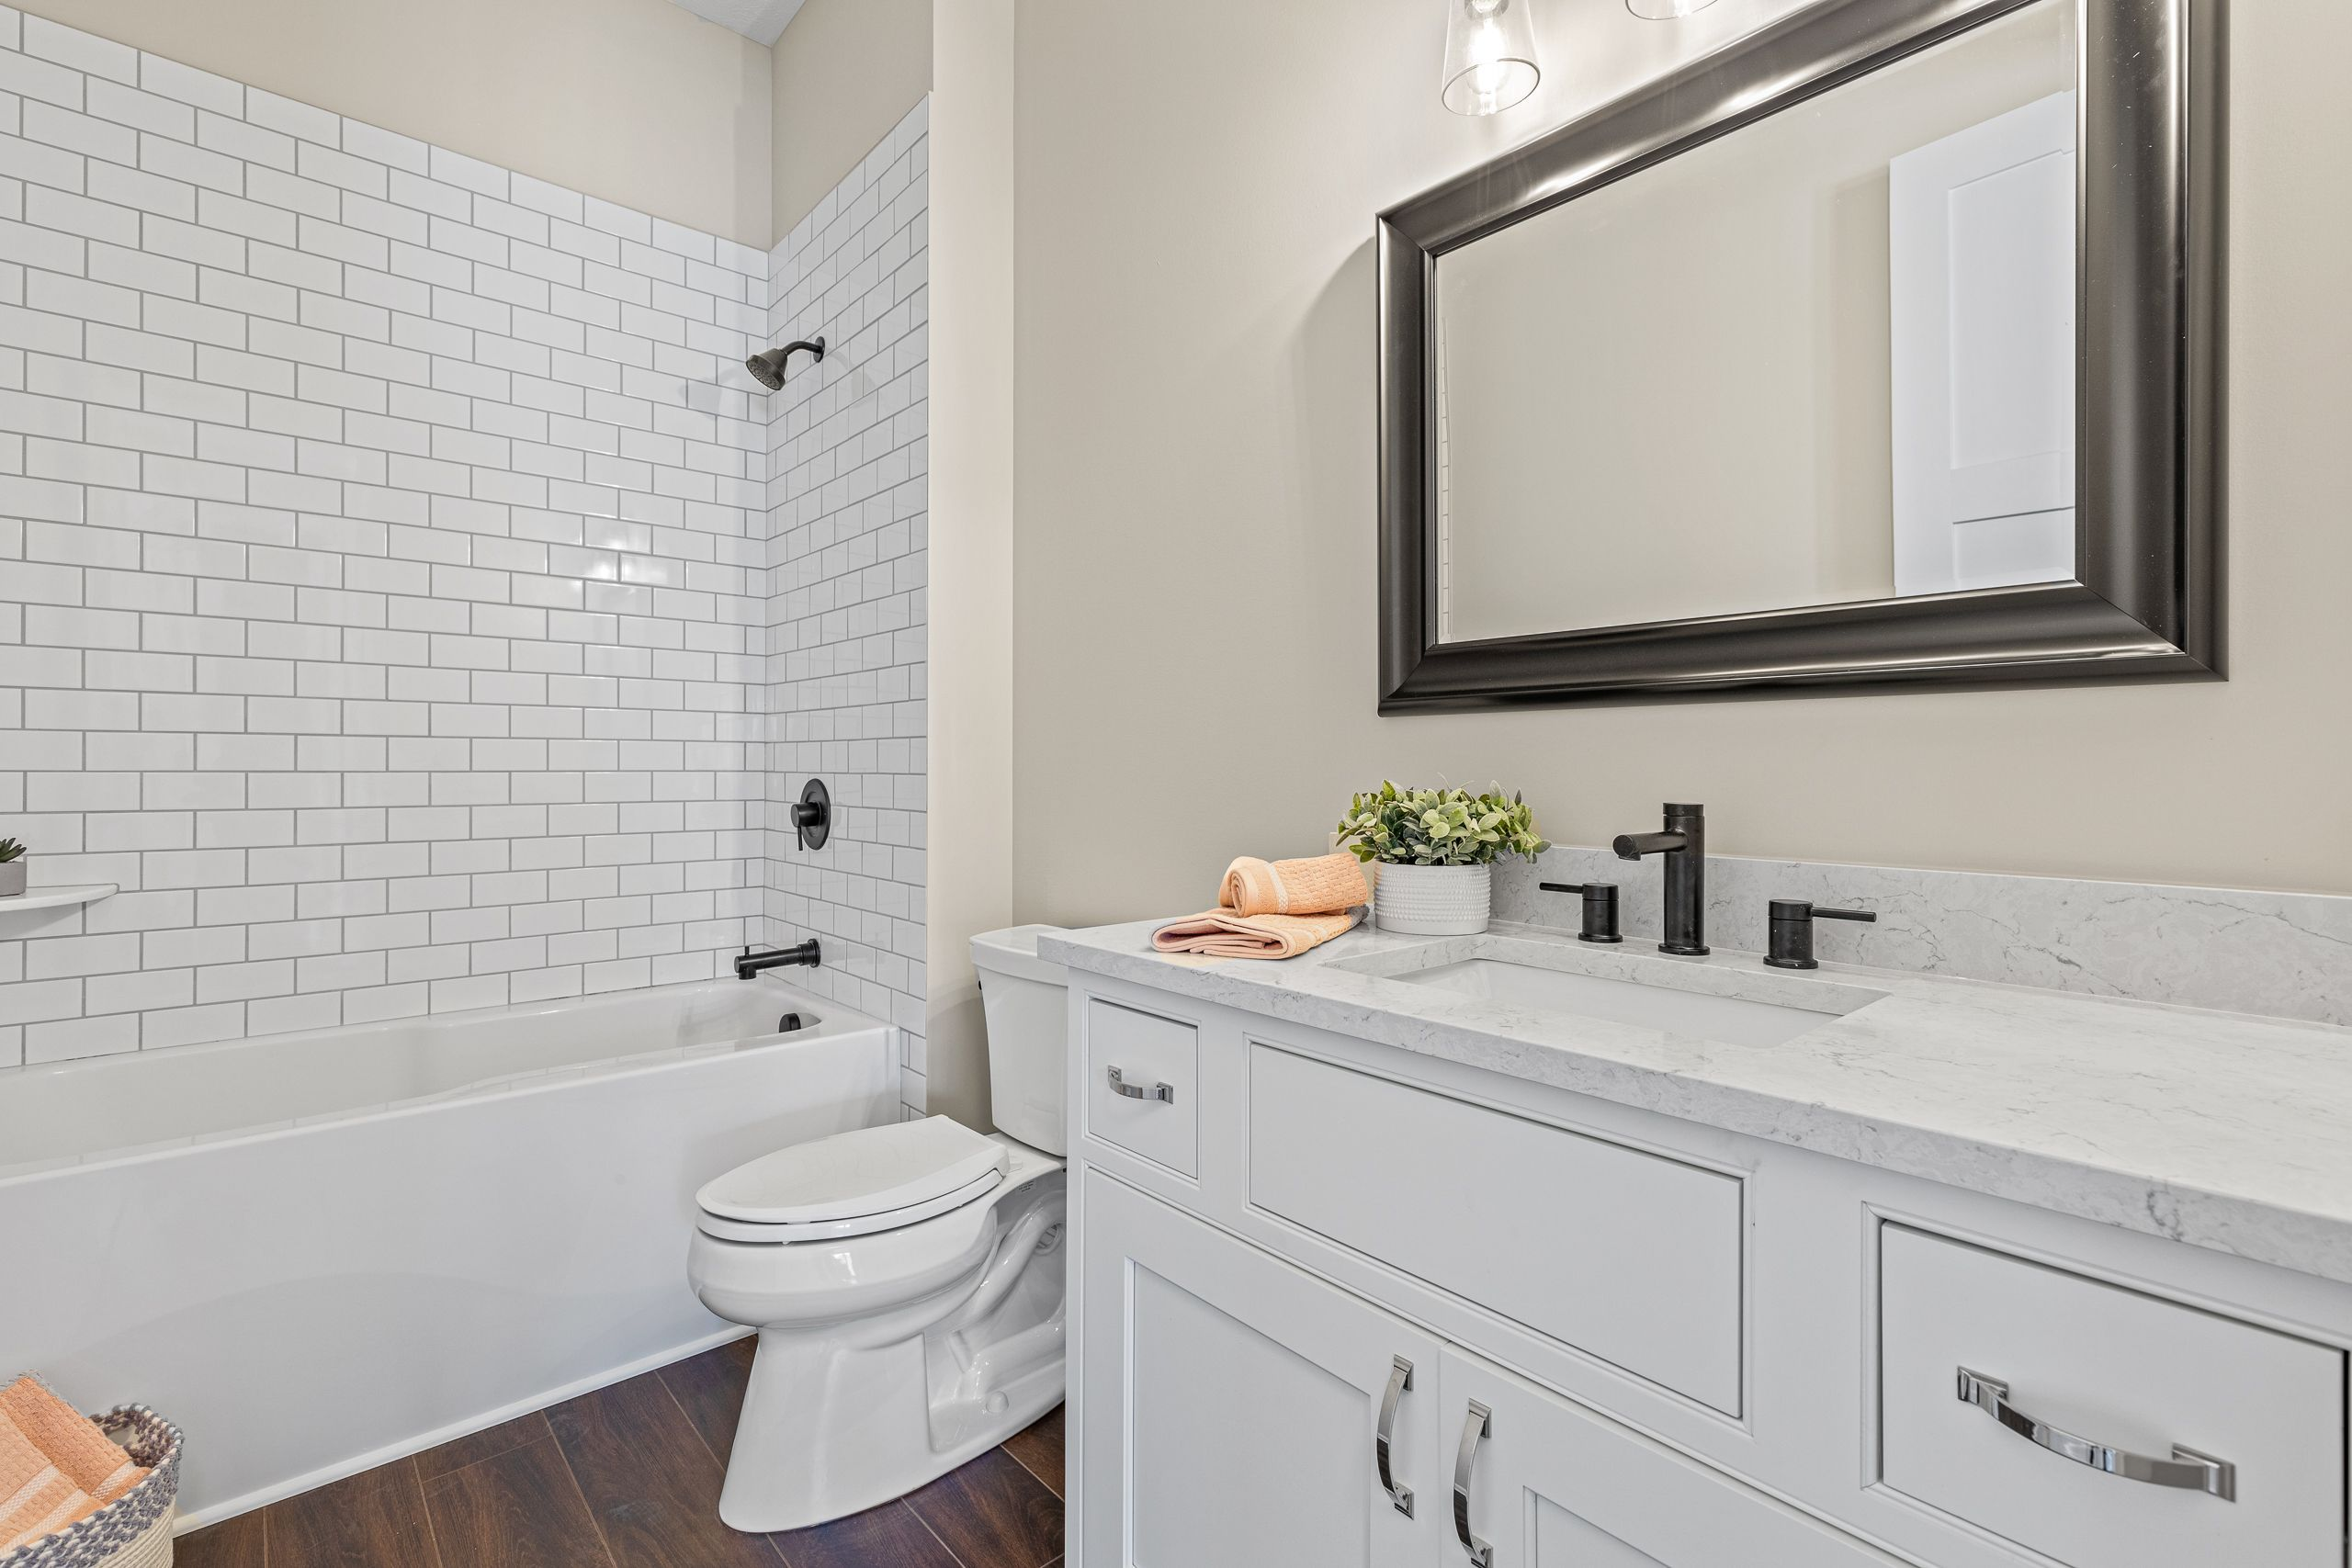 Bathroom featured in the Daisy By Skoda Construction in Cleveland, OH